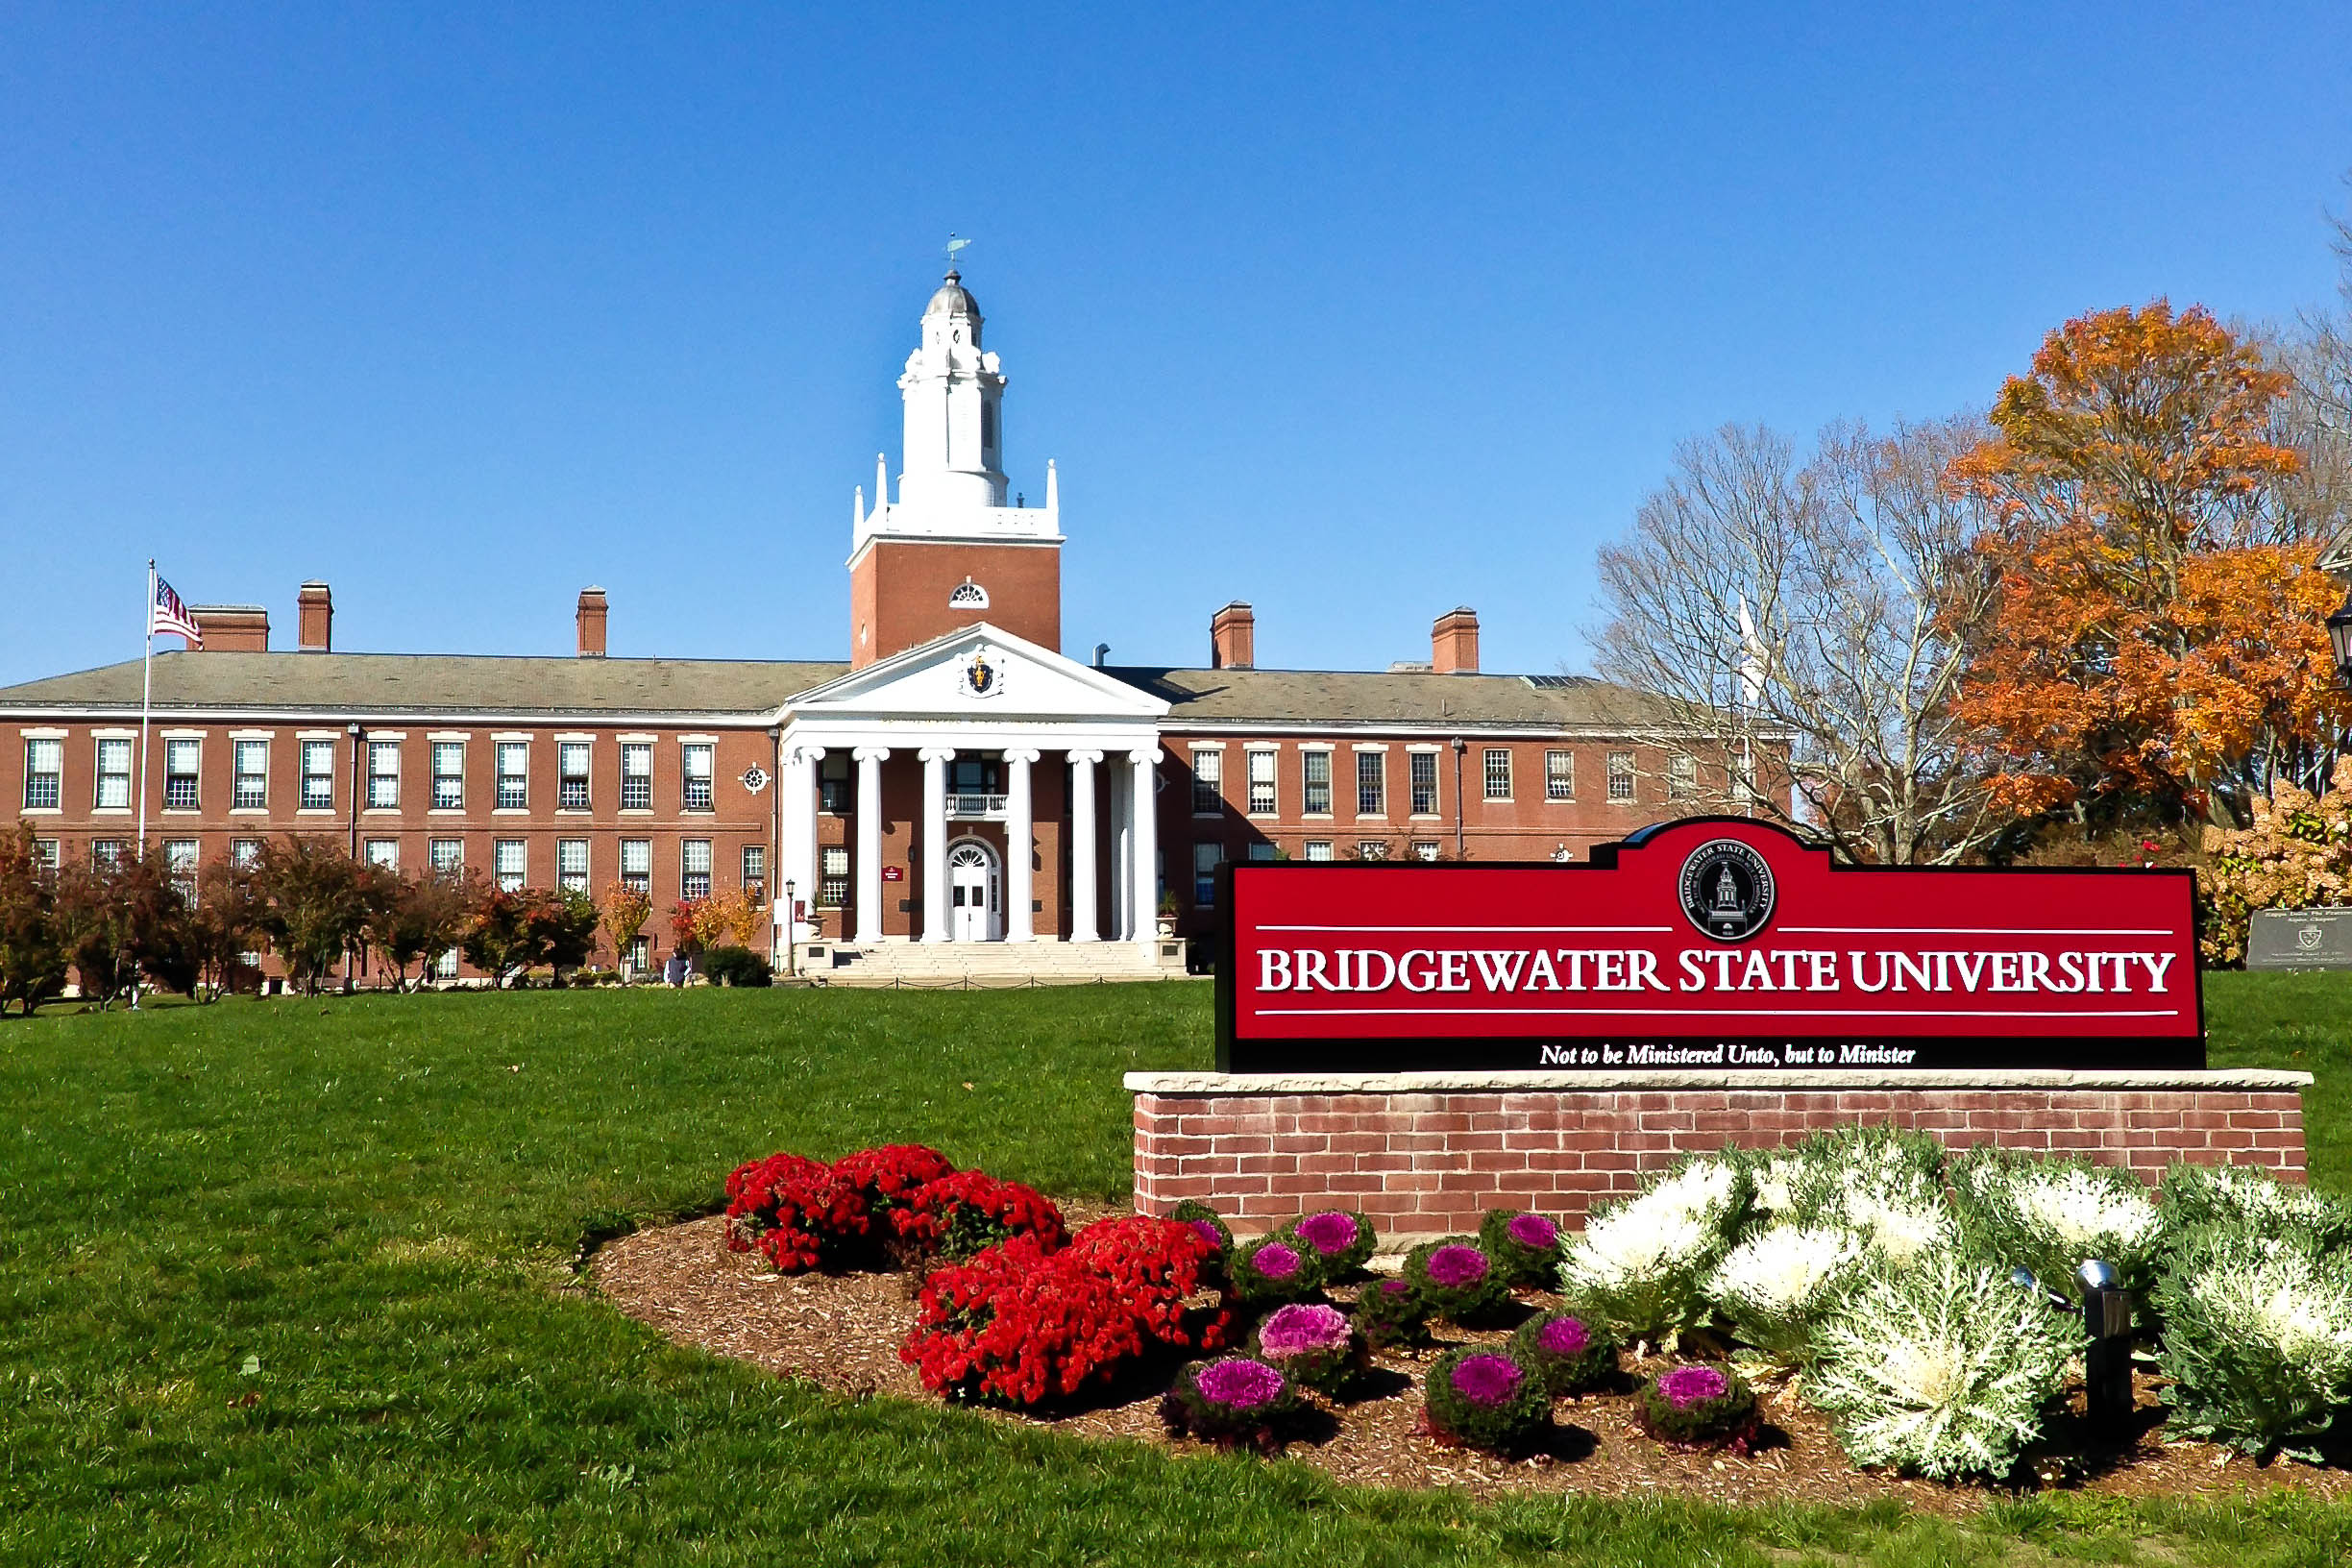 Jobs and Opportunities for Students at Bridgewater State University